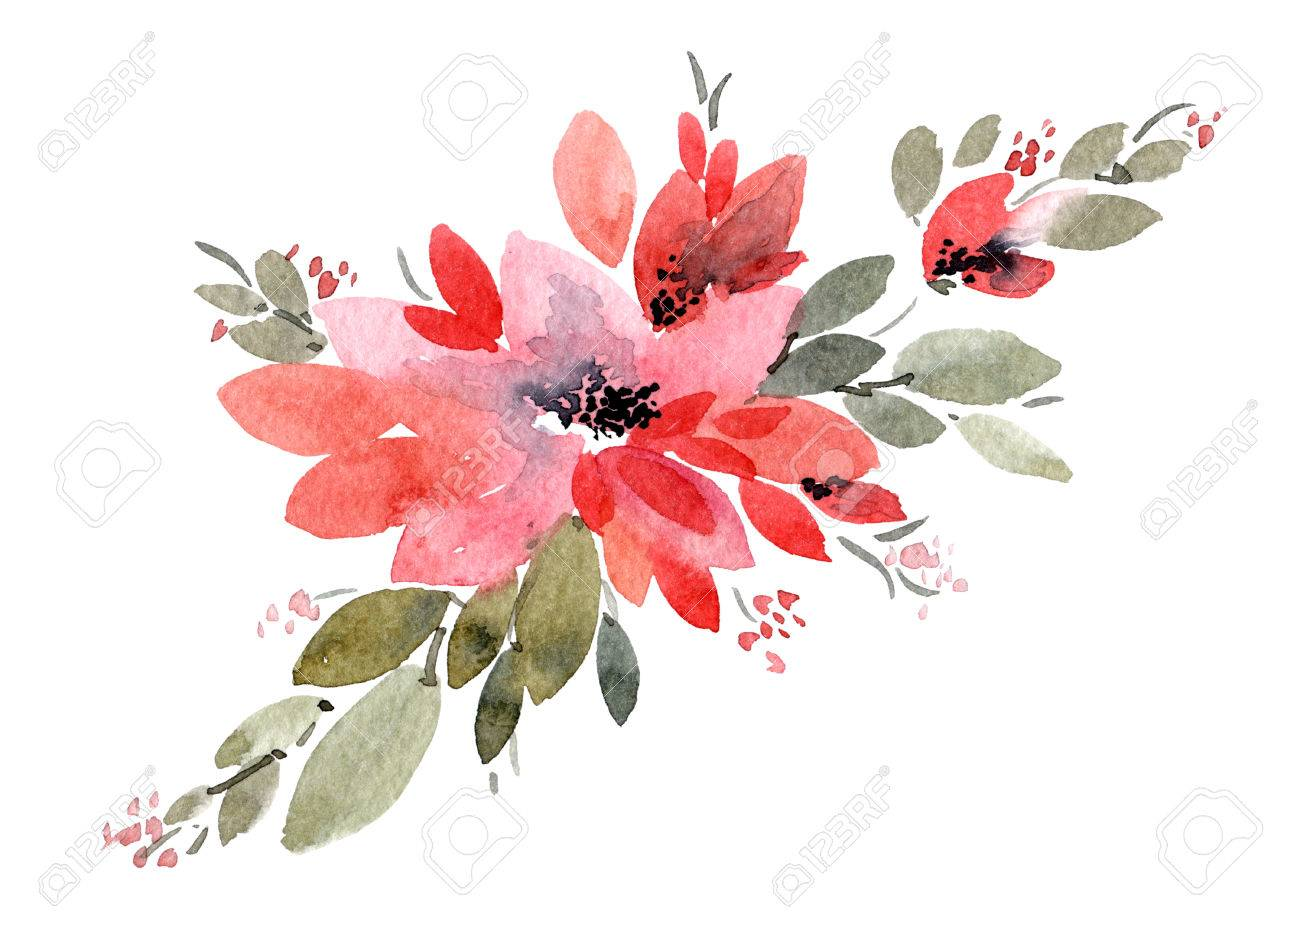 watercolor painted flowers with leaves hand drawn flowers greeting